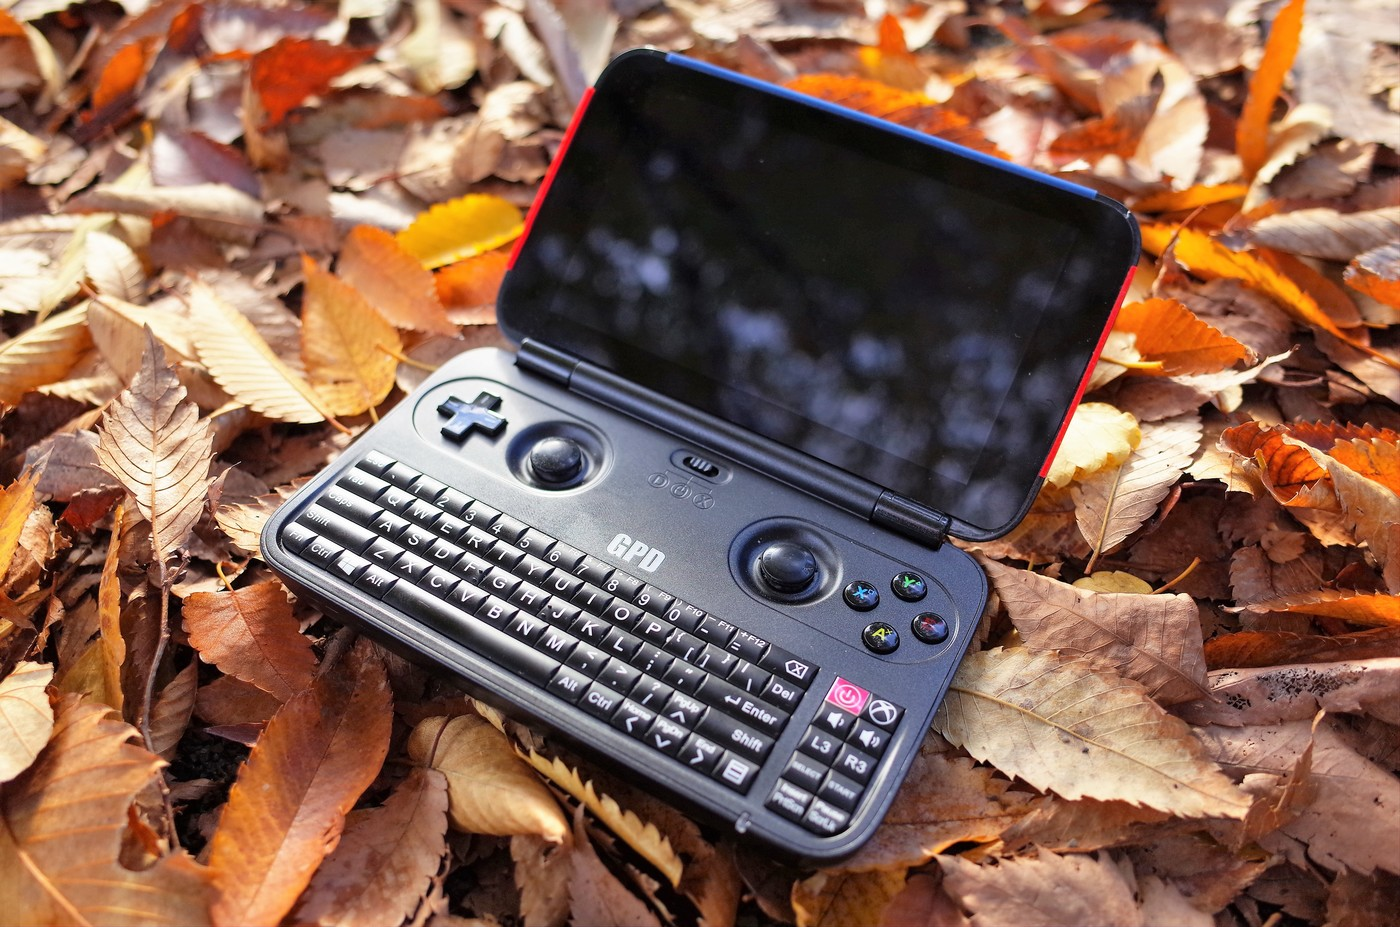 Latest bios 10252016 for gpd win can be downloaded 00006